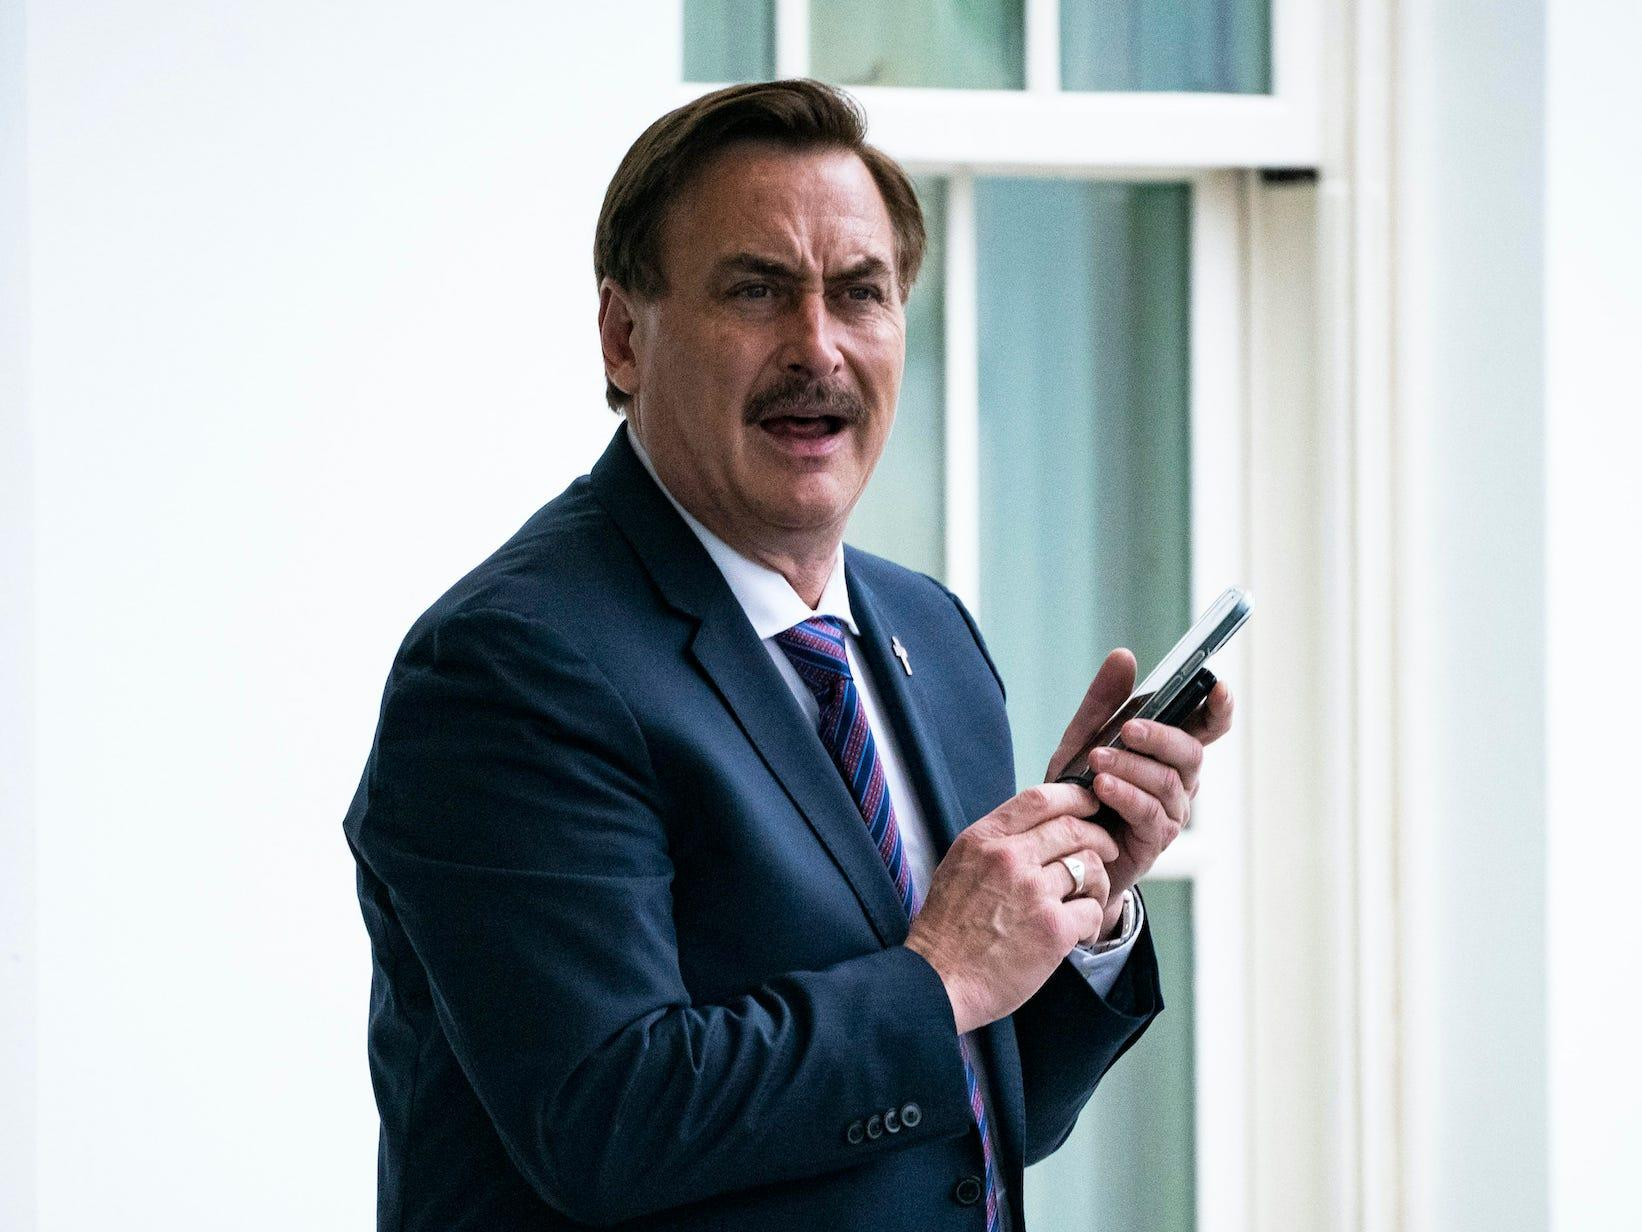 <div><figure><div><div><p><img alt=Mike Lindell holds a phone to his ear outside the Wh